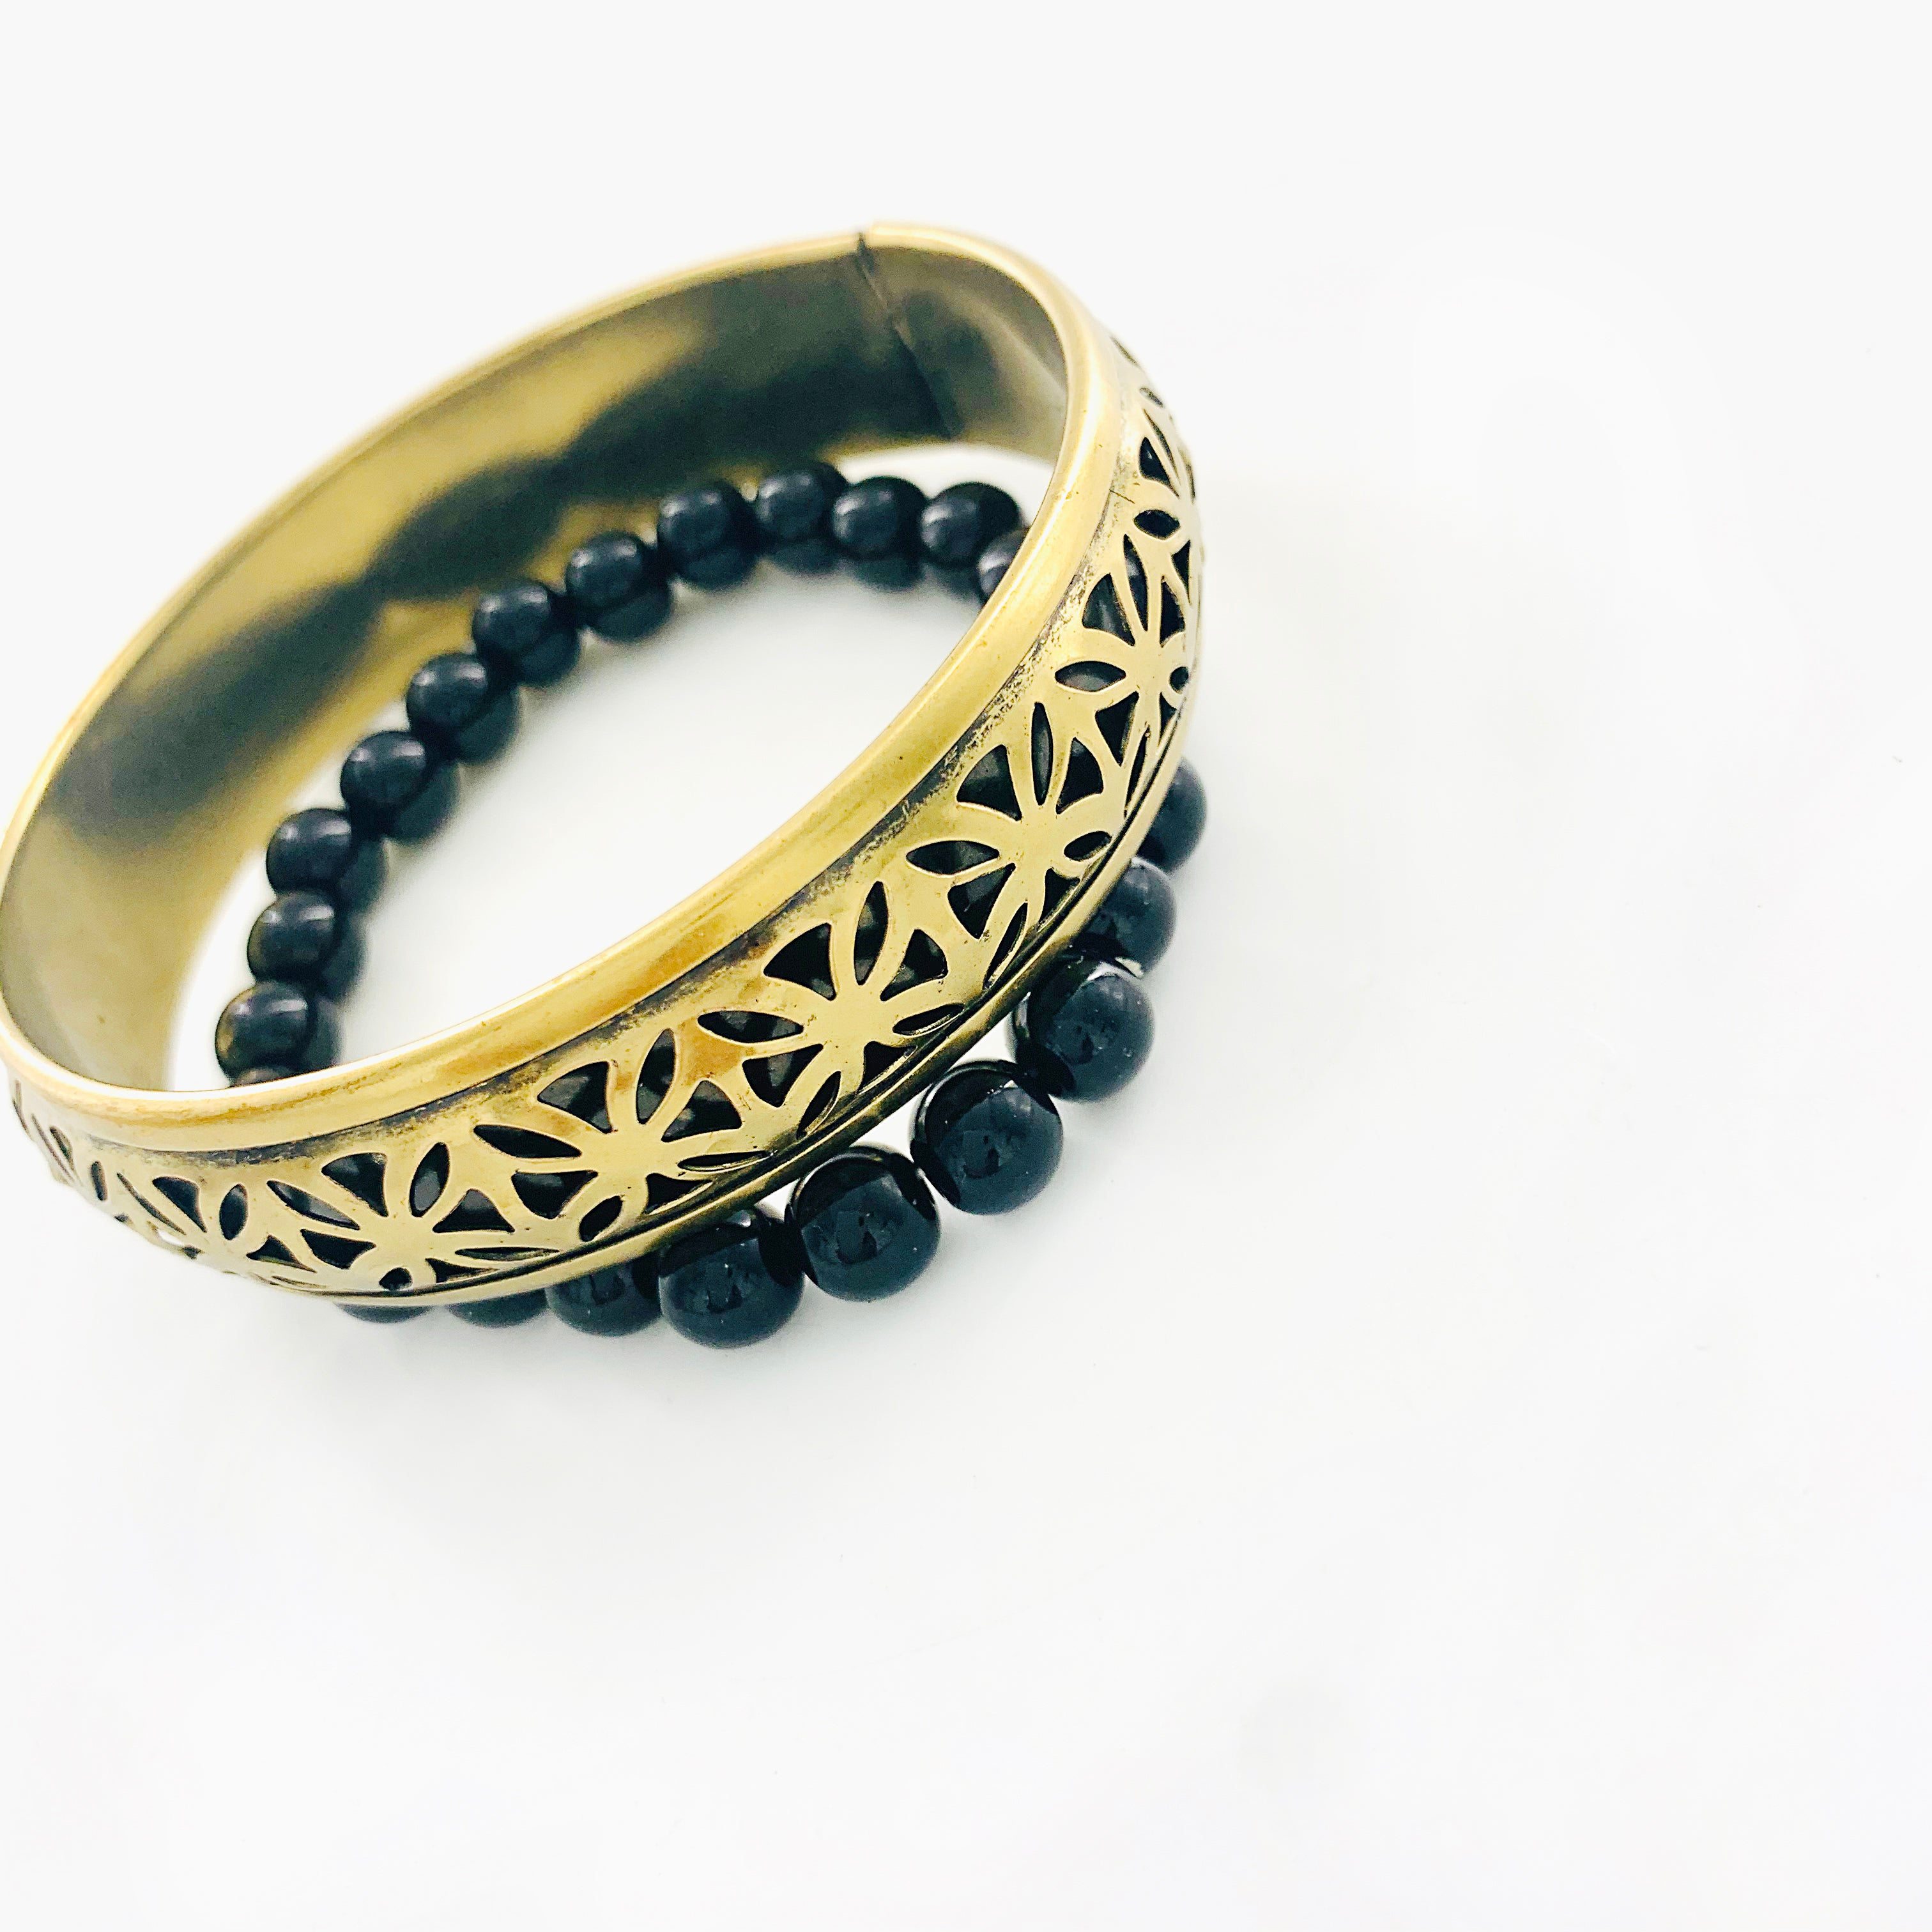 Black beaded bracelet with rustic gold bangle